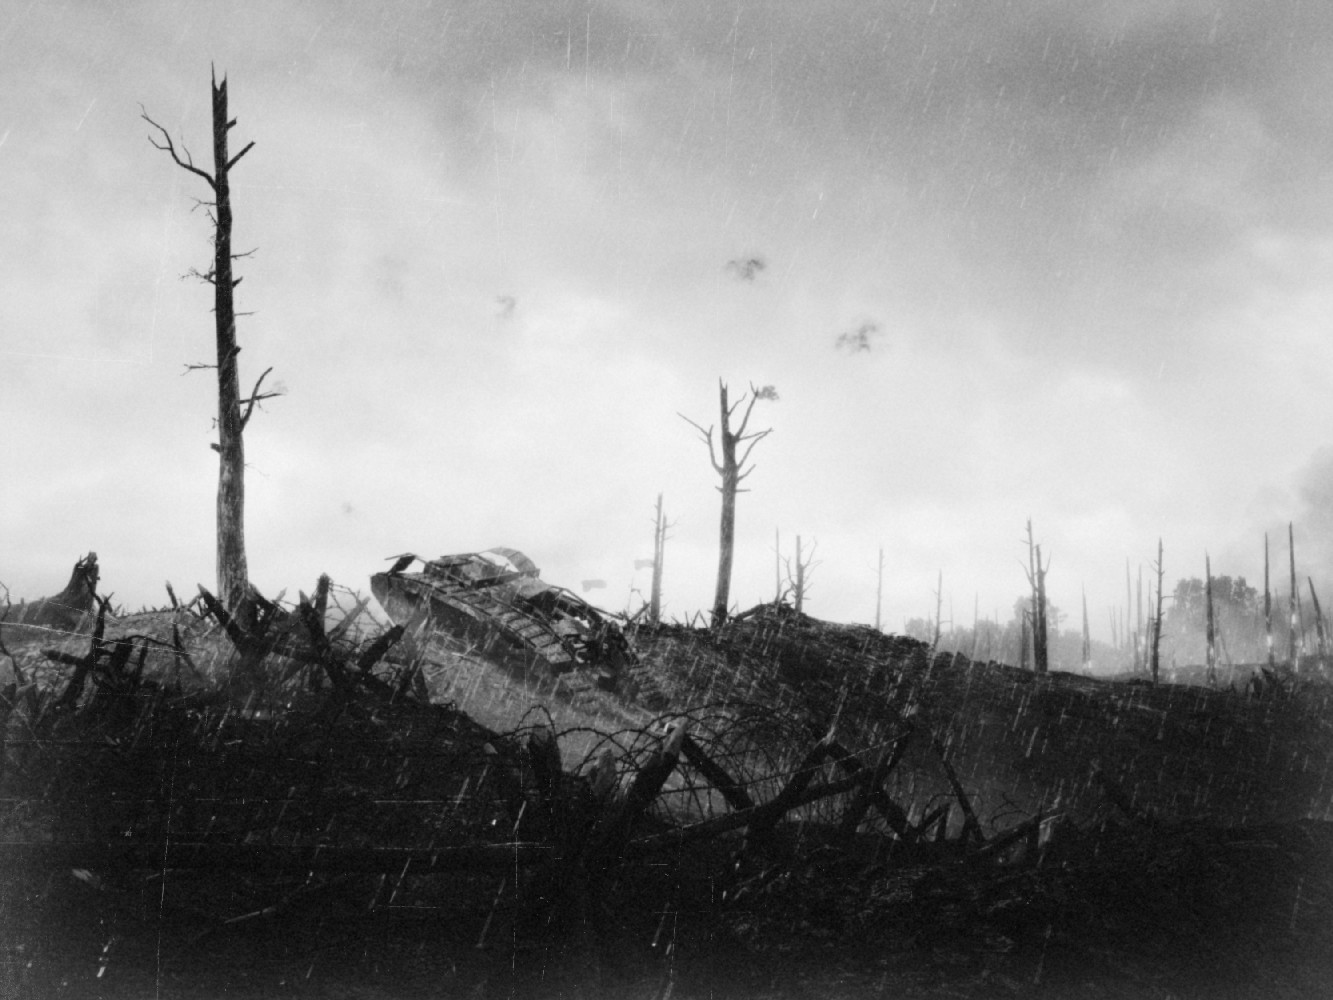 Battlefield 1 Screens Look Hauntingly Realistic With Black & White Filter 0ZkHkEP